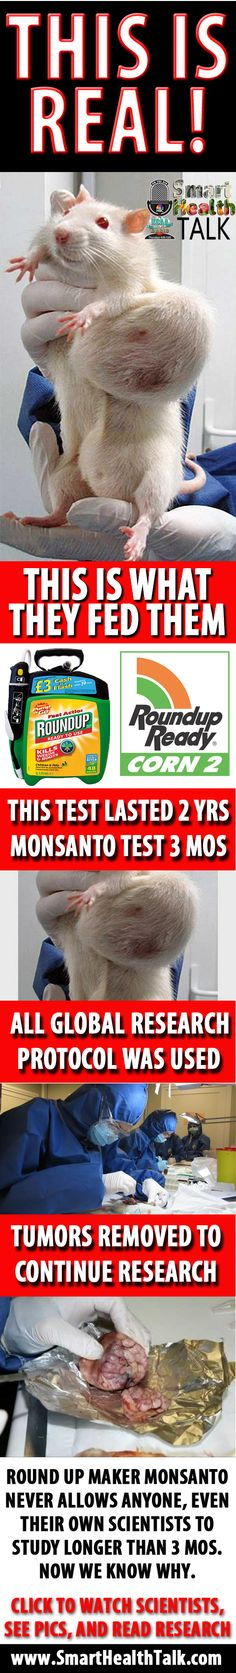 Remember the Seralini study? Rats fed GMOs, Monsanto's Roundup Ready corn, developed tumors. Some died. The study was published in the journal, Food and Chemical Toxicology. Pictures published. A wave of biotech-industry criticism ensued. Pressure built... The journal retracted the study. Why? Unethical? Plagiarized? Dishonest?  No, he used rats which (supposedly) had an inherent tendency to develop tumors (the Sprague-Dawley strain), and used too few. Smell a rat?